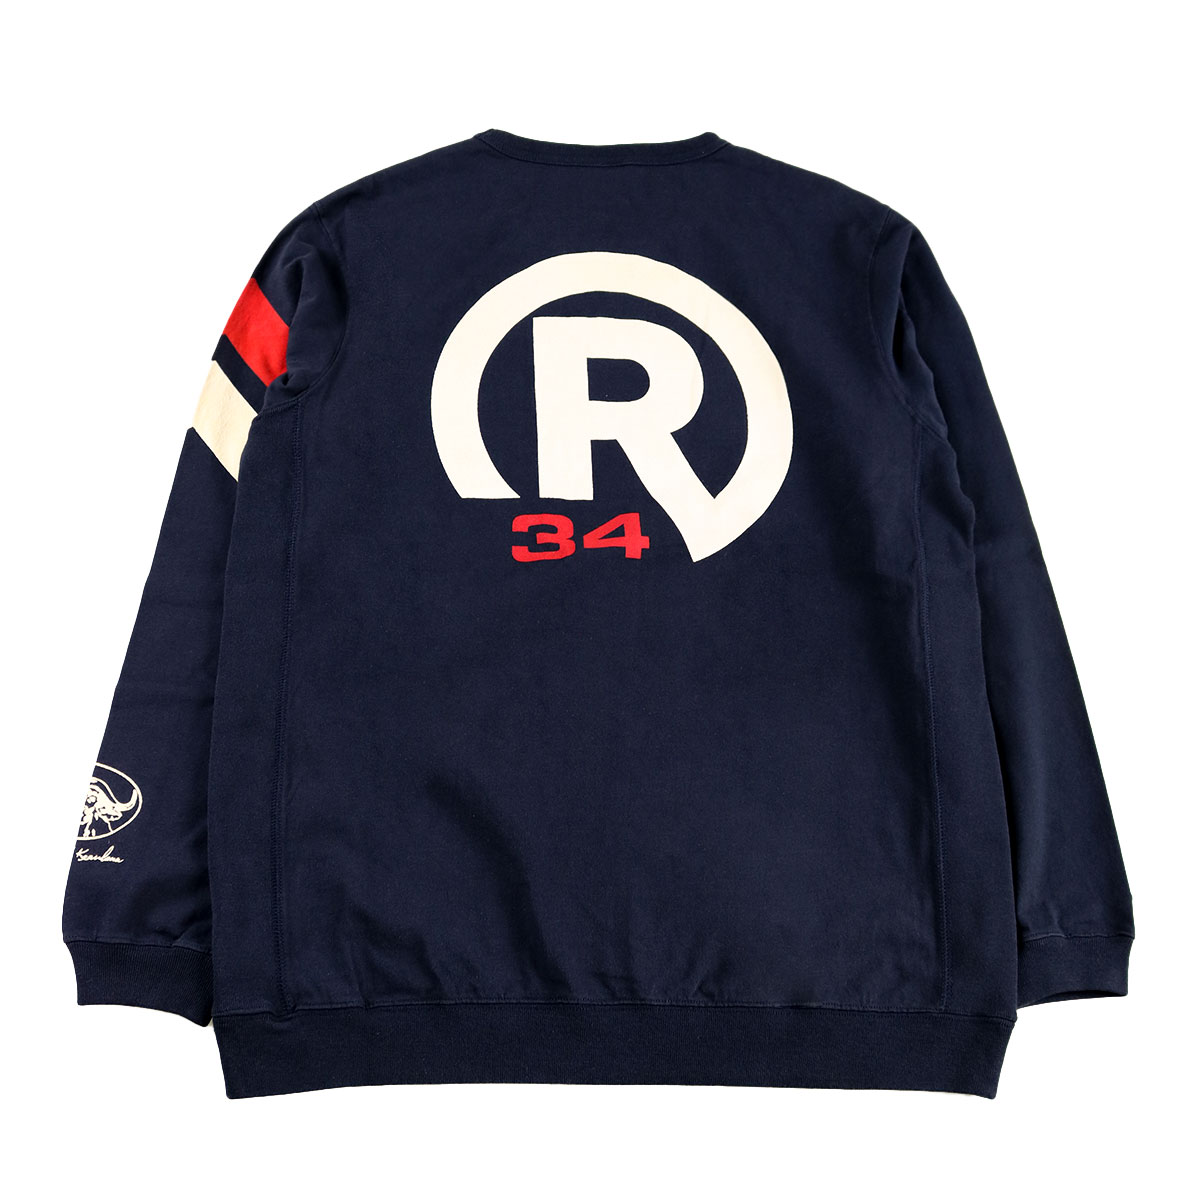 HEAVY WEIGHT RIB LONG T-SHIRT R34